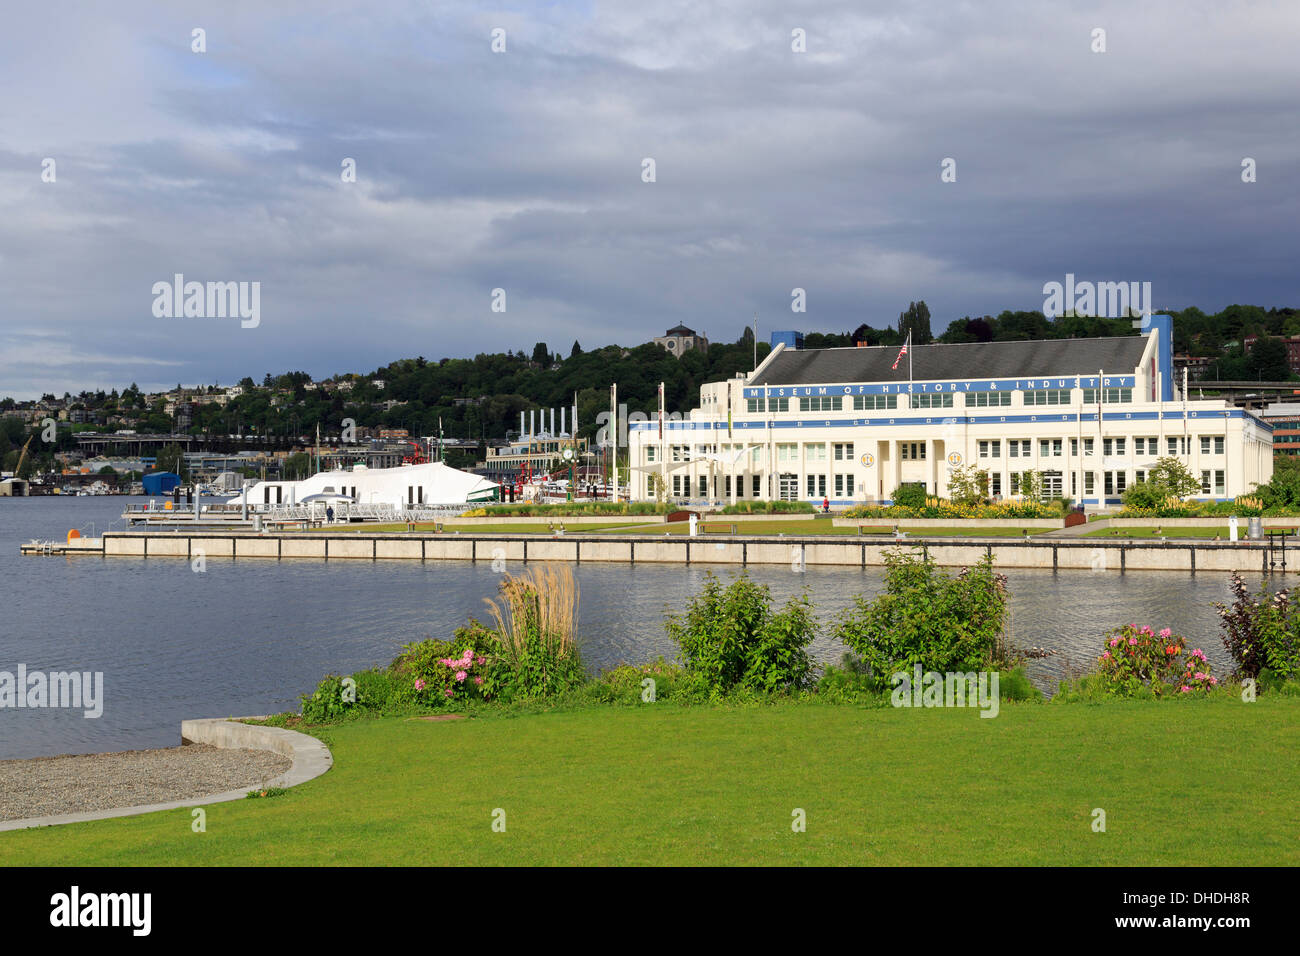 Museum of History and Industry, Lake Union Park, Seattle, Washington State, United States of America, North America - Stock Image